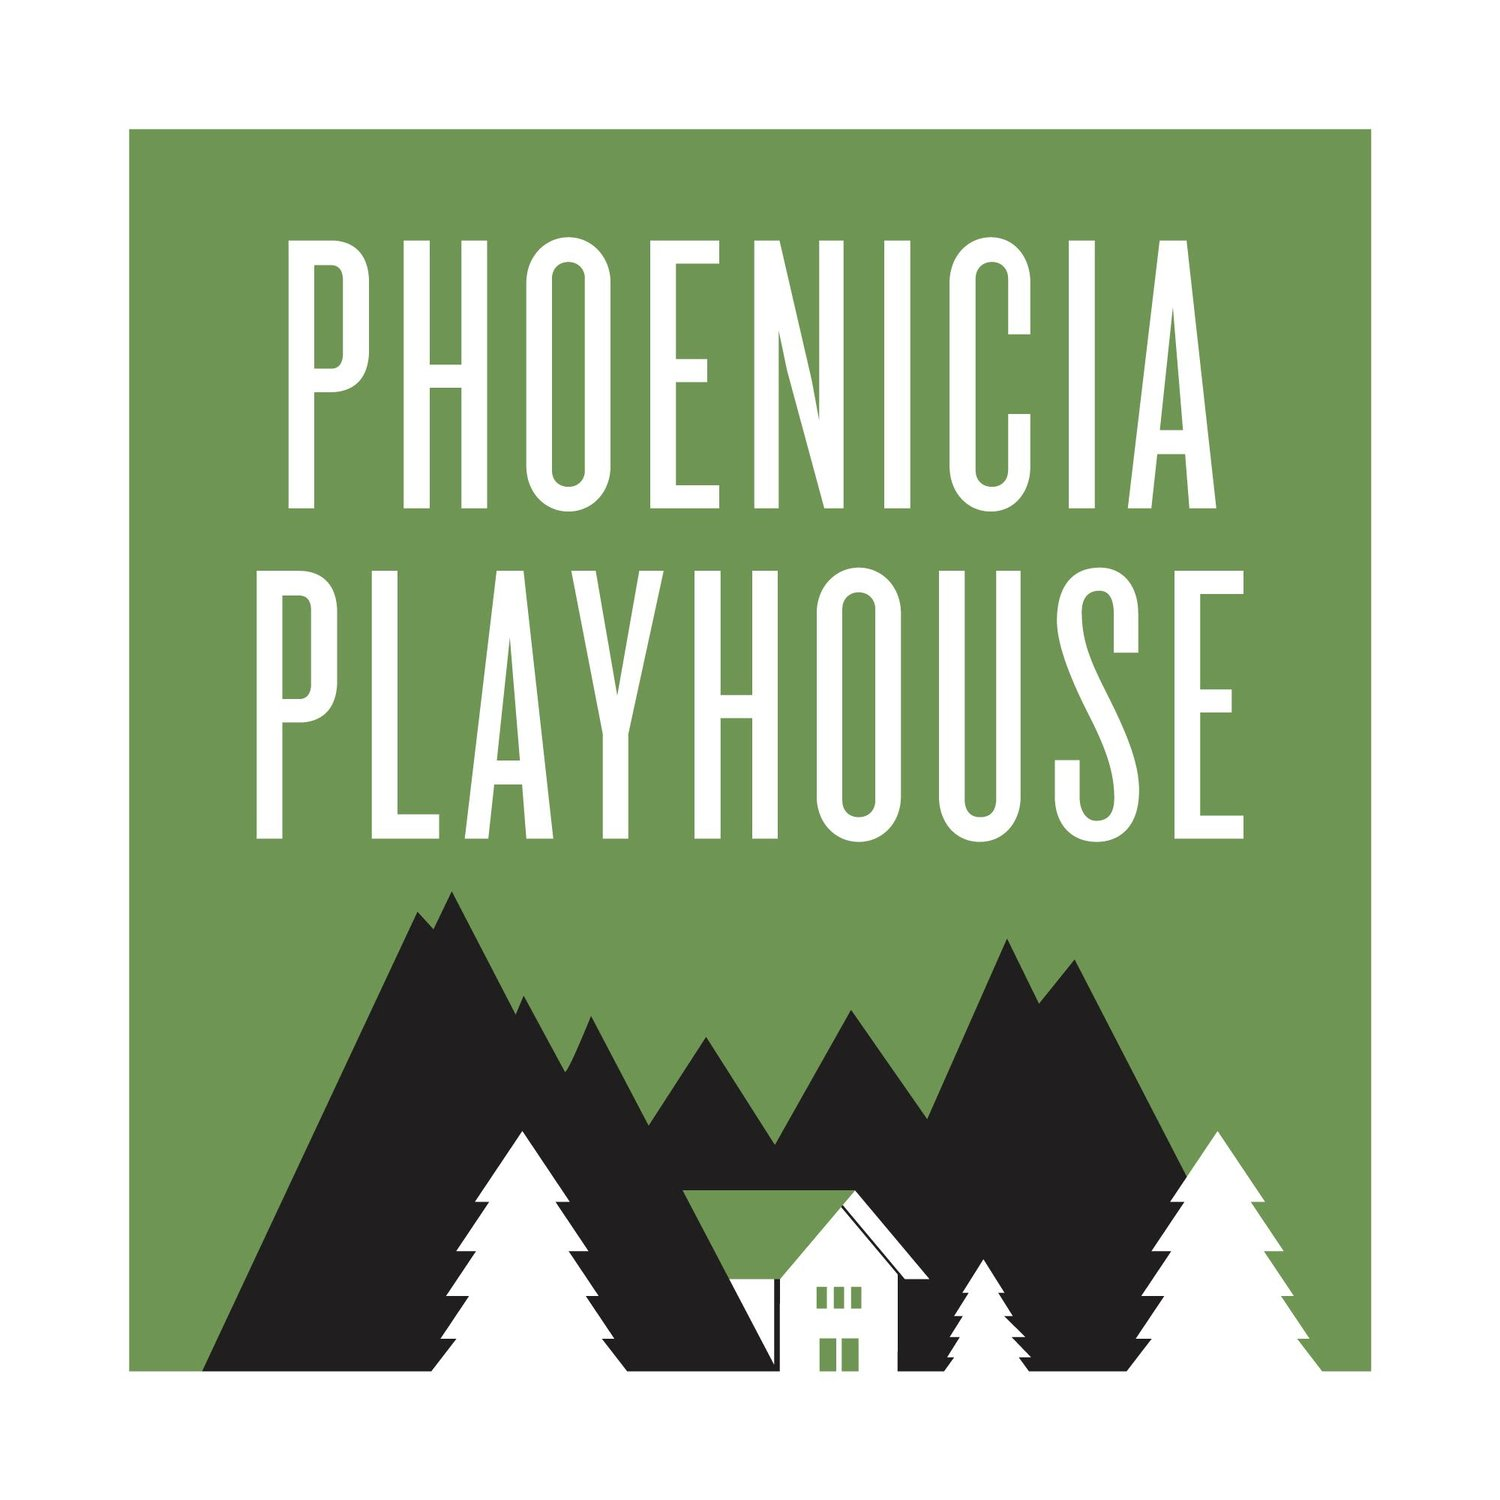 Phoenicia Playhouse